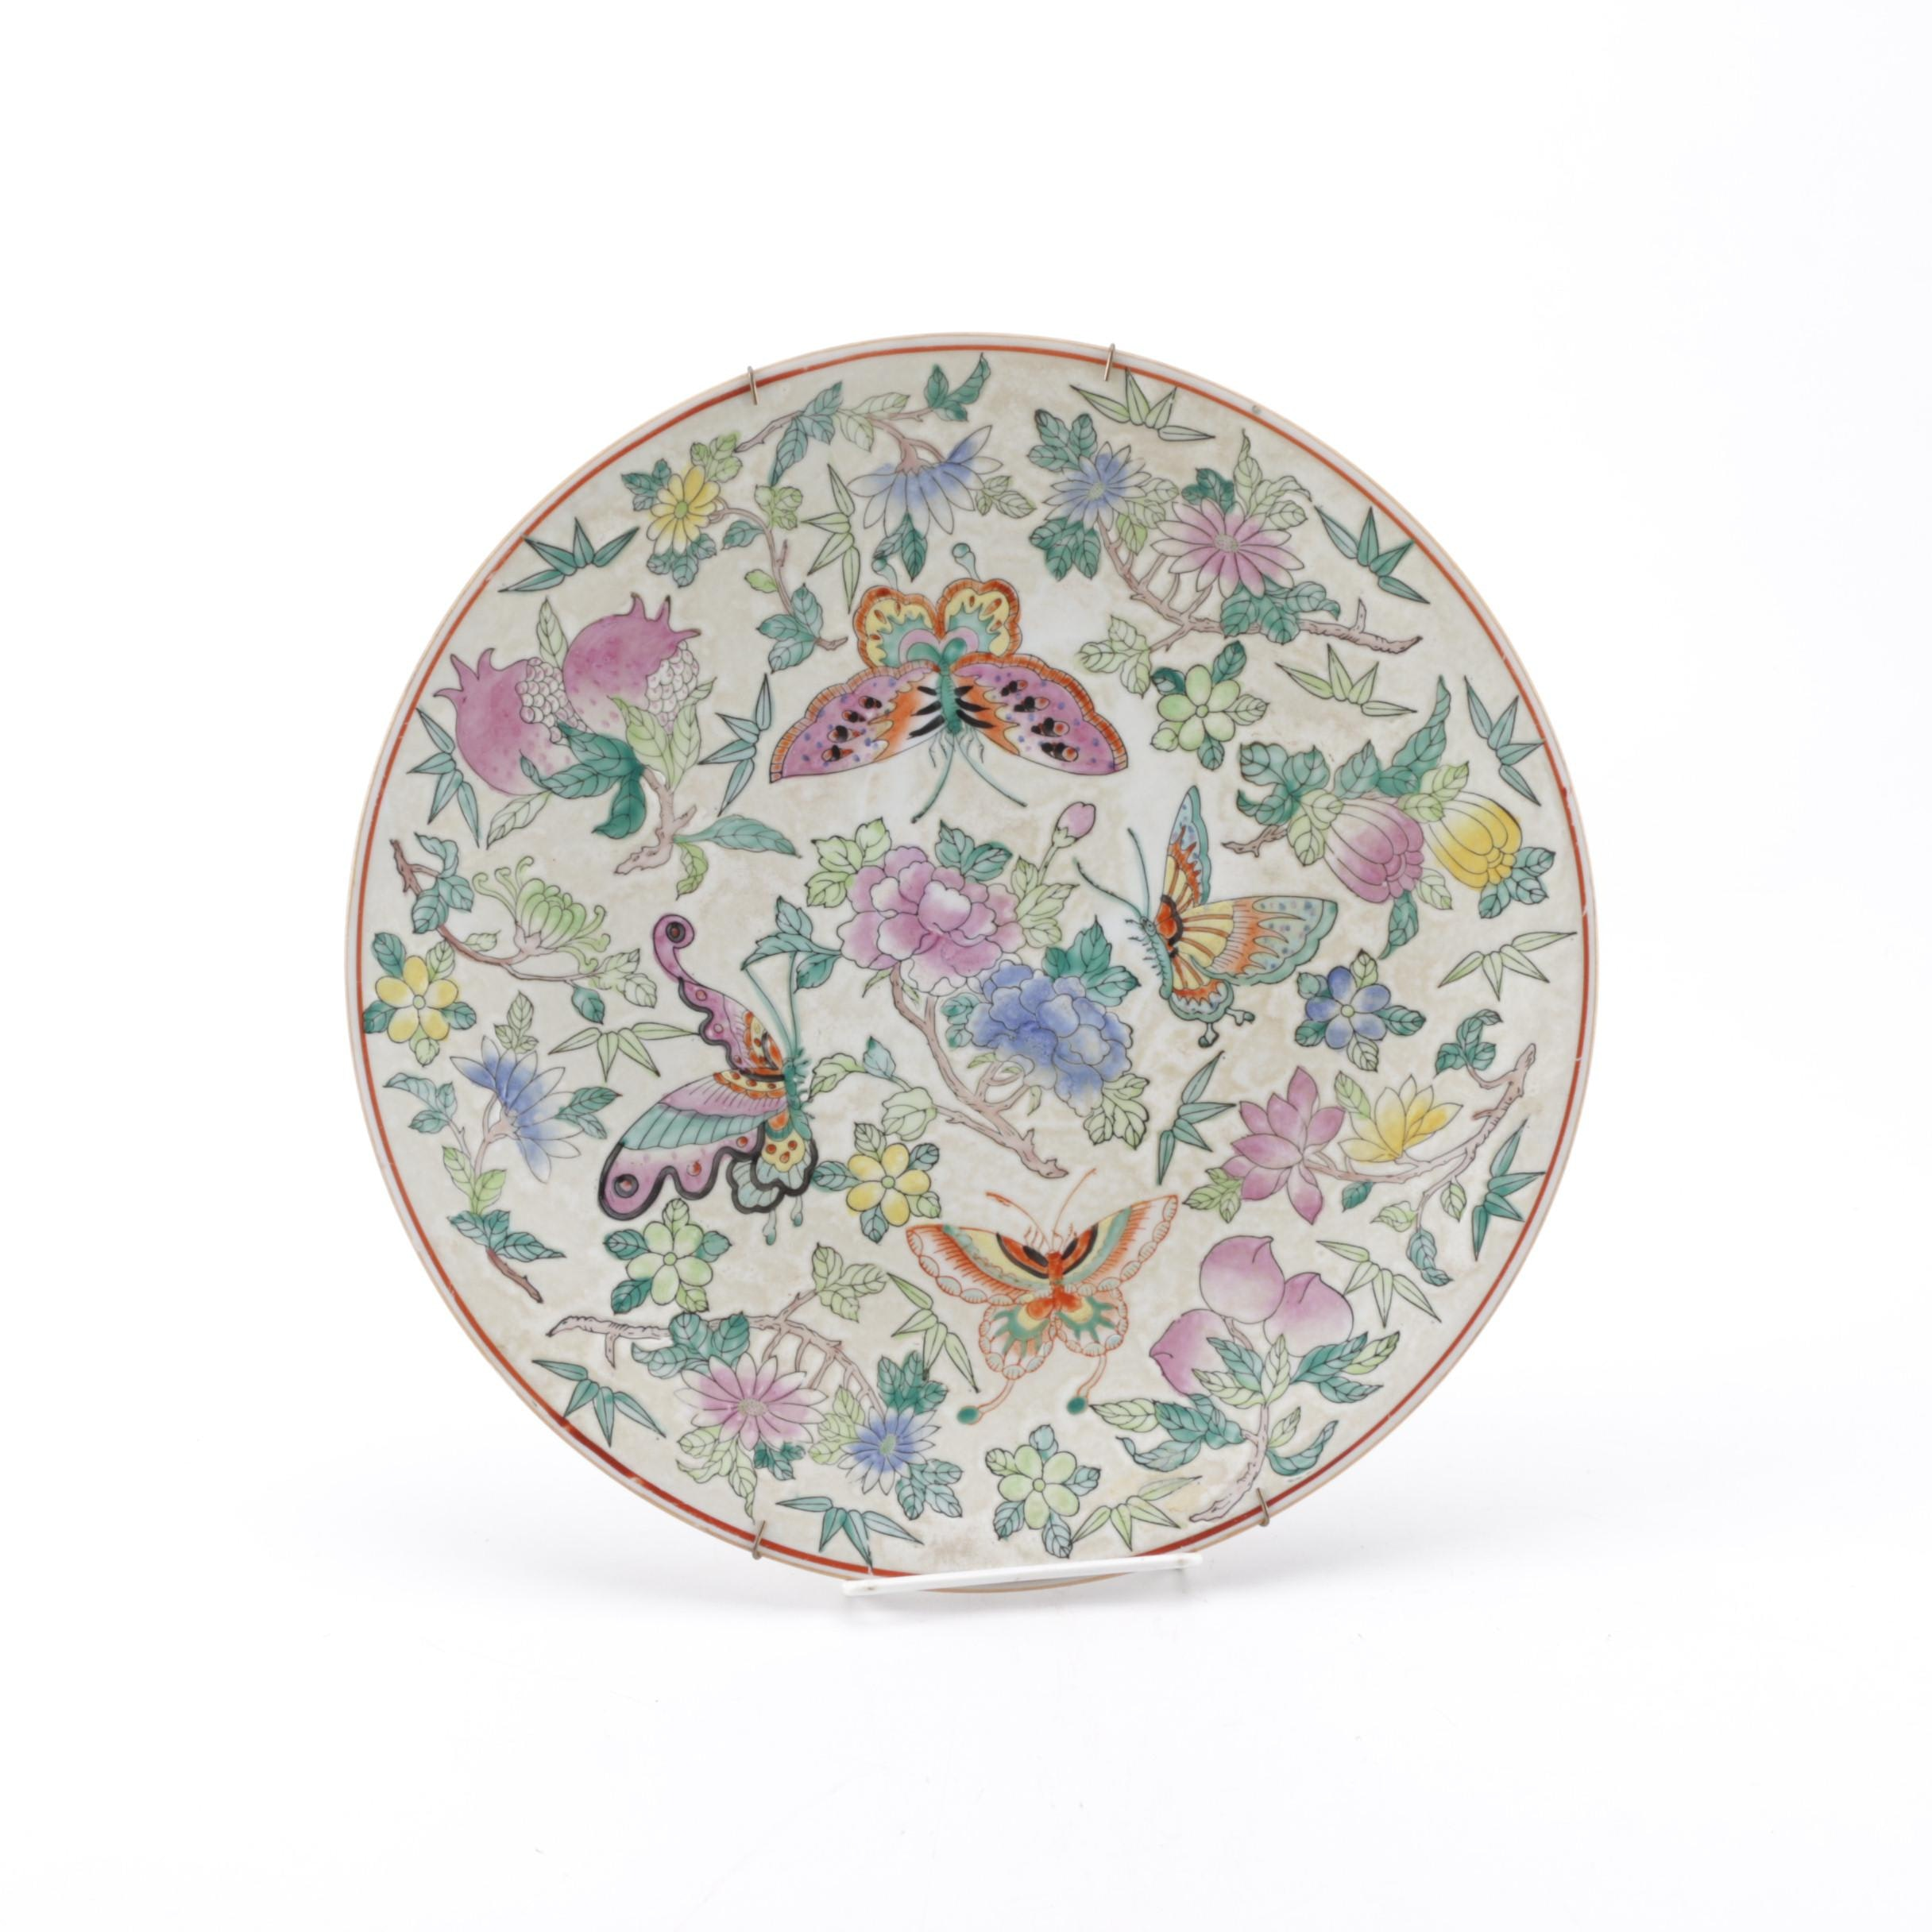 Decorative Chinese Plate